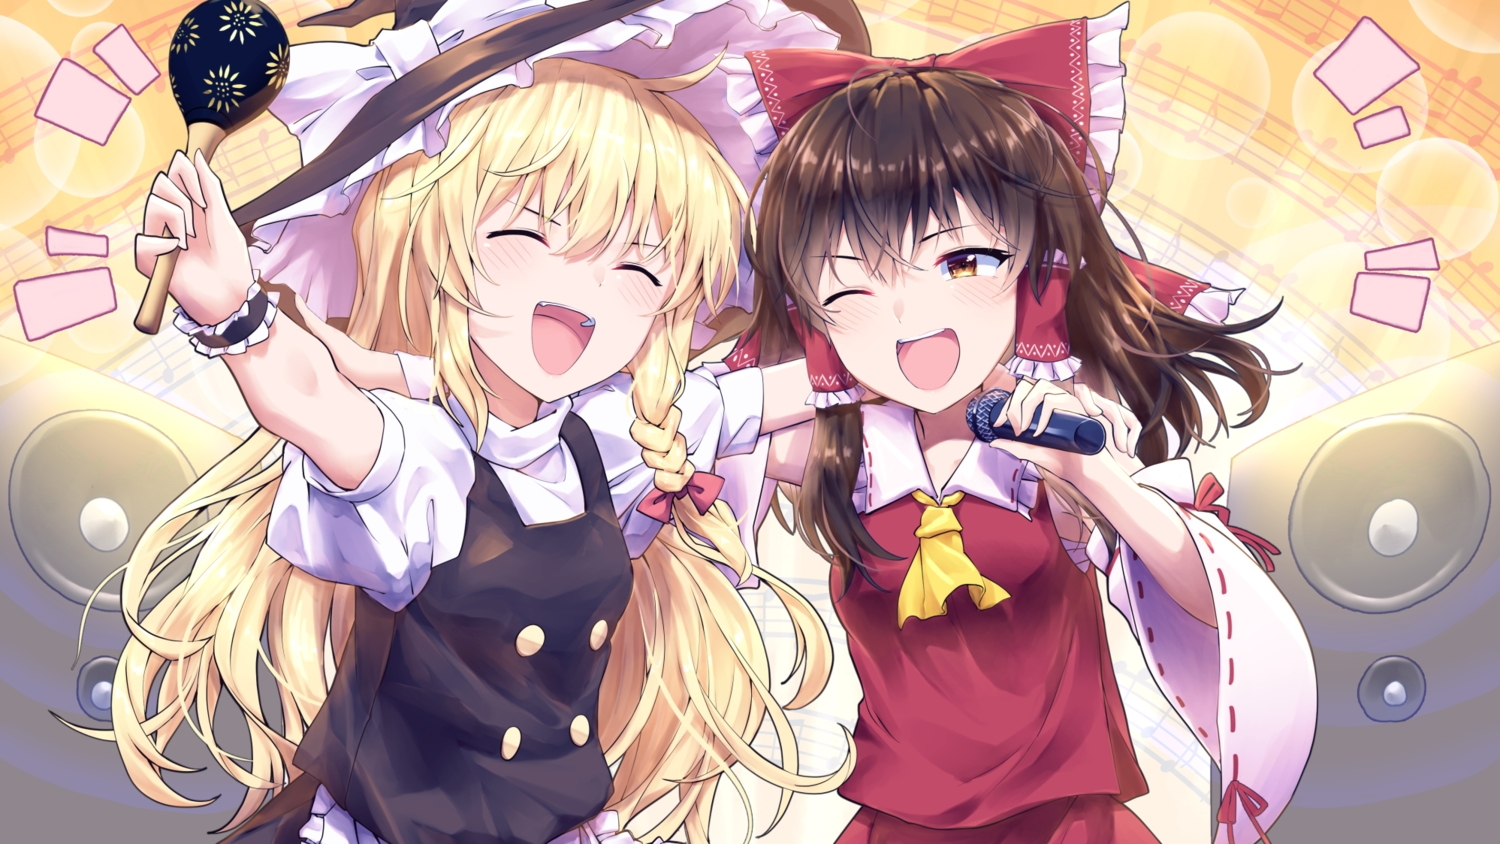 2girls black_hair blonde_hair blush bow braids brown_eyes hakurei_reimu hat instrument japanese_clothes kirisame_marisa kisamu_(ksmz) long_hair miko tie touhou wink witch witch_hat wristwear